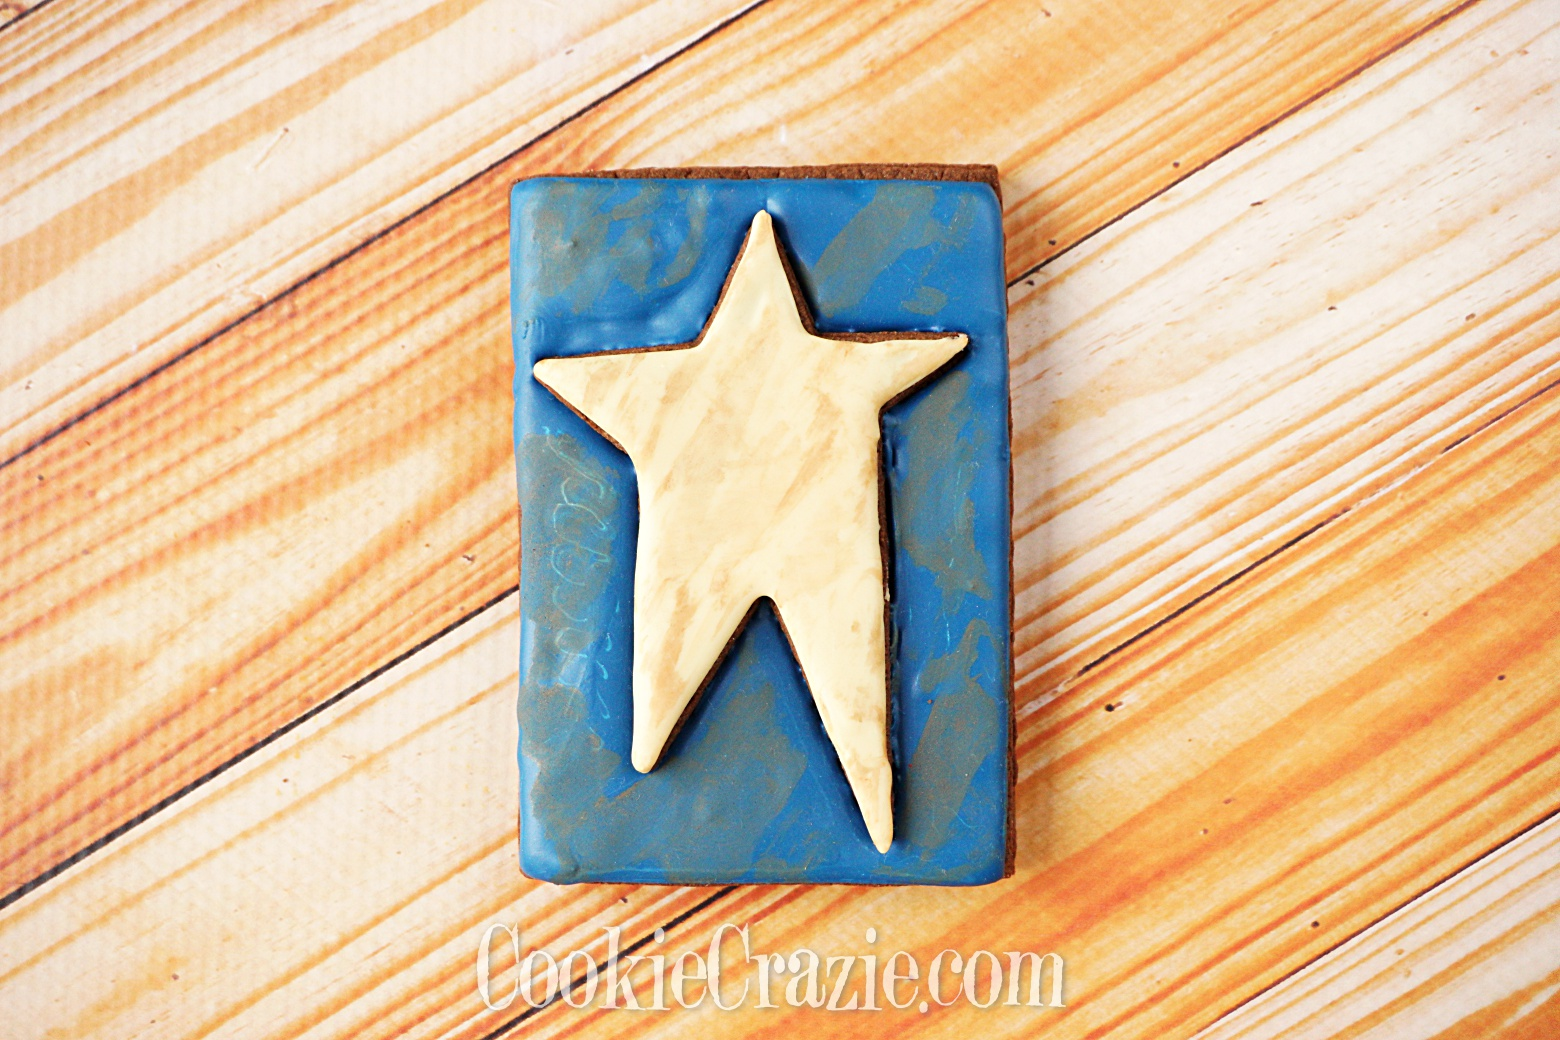 Patriotic Primitive Star Decorated Sugar Cookie YouTube video  HERE